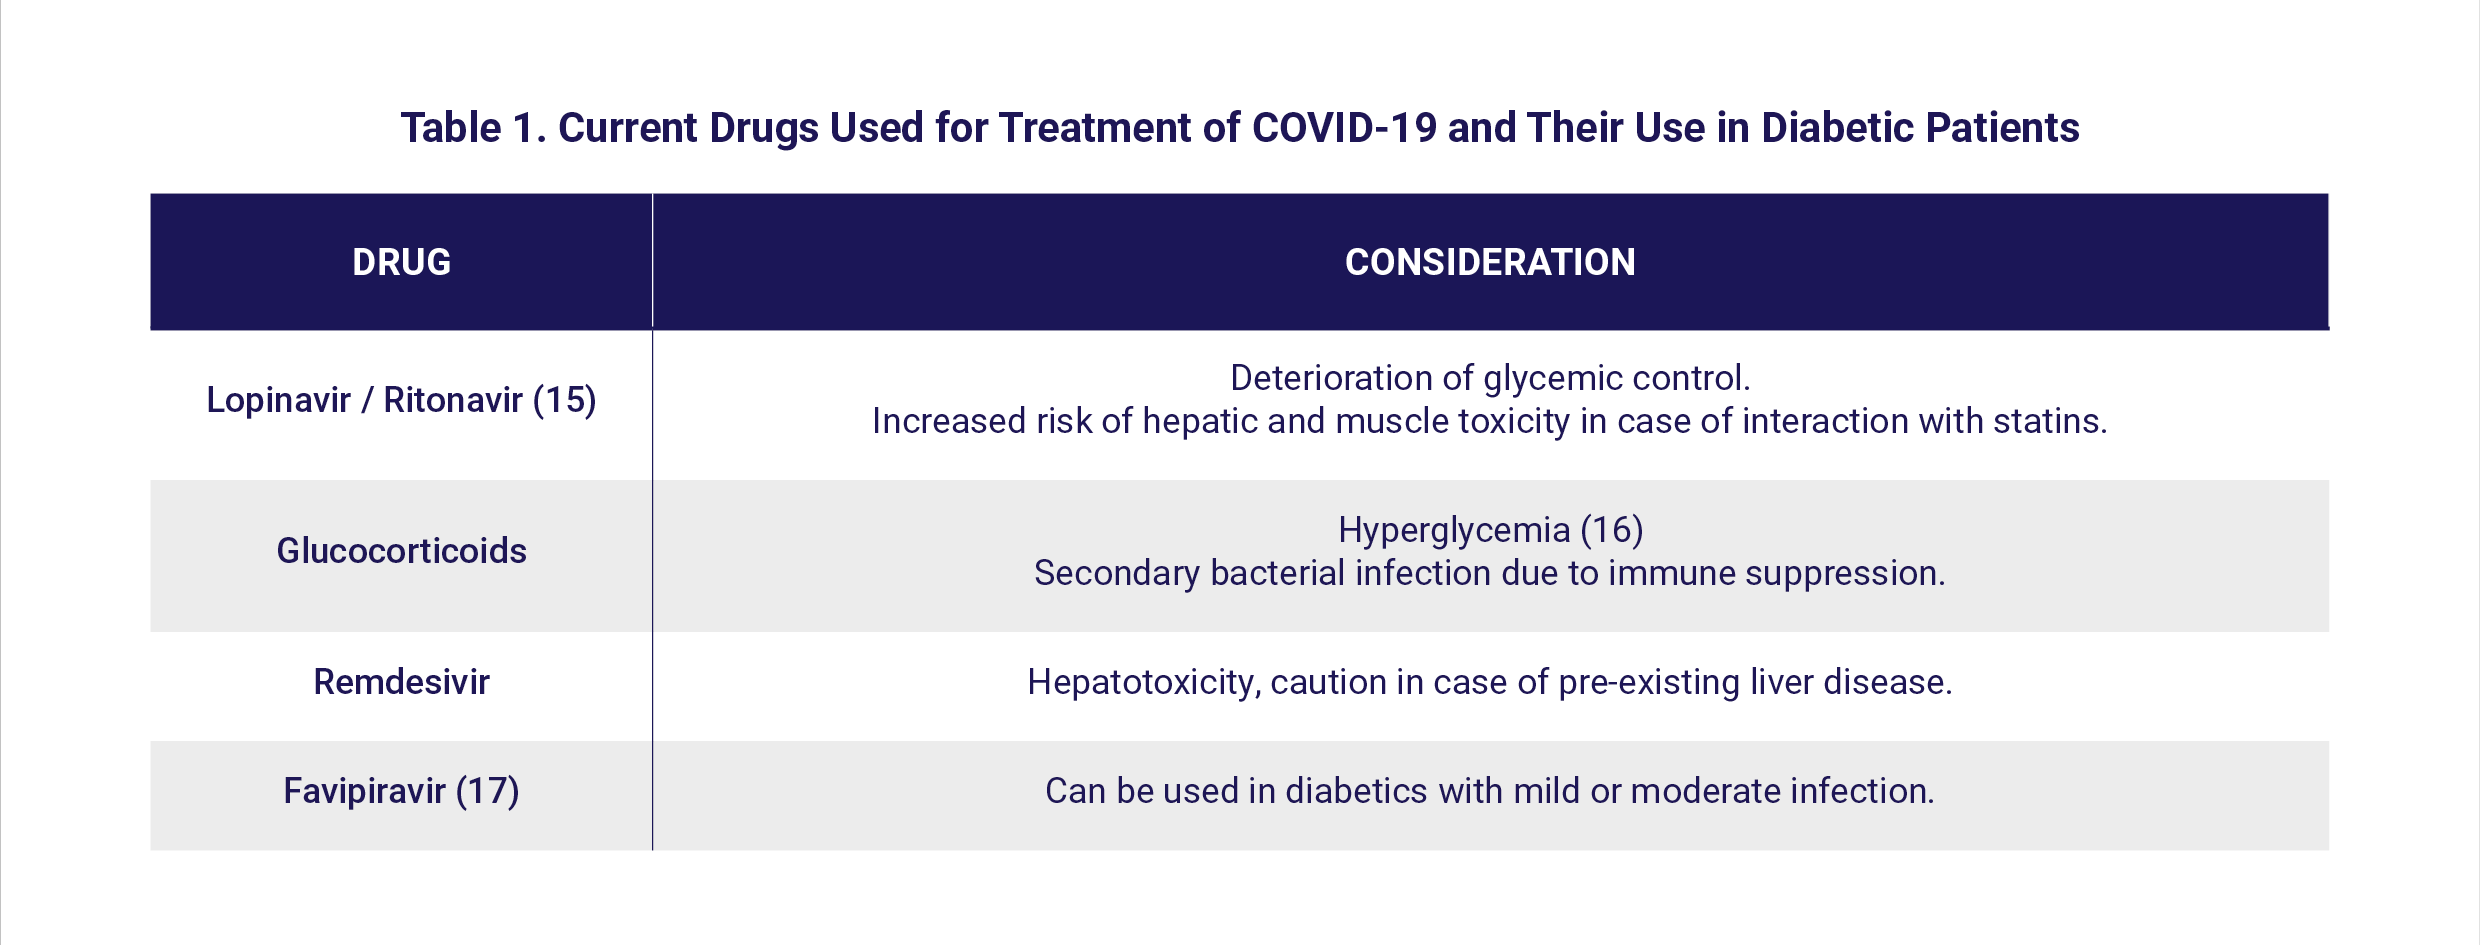 Table 1. Current Drugs Used for Treatment of COVID-19 and Their Use in Diabetic Patients